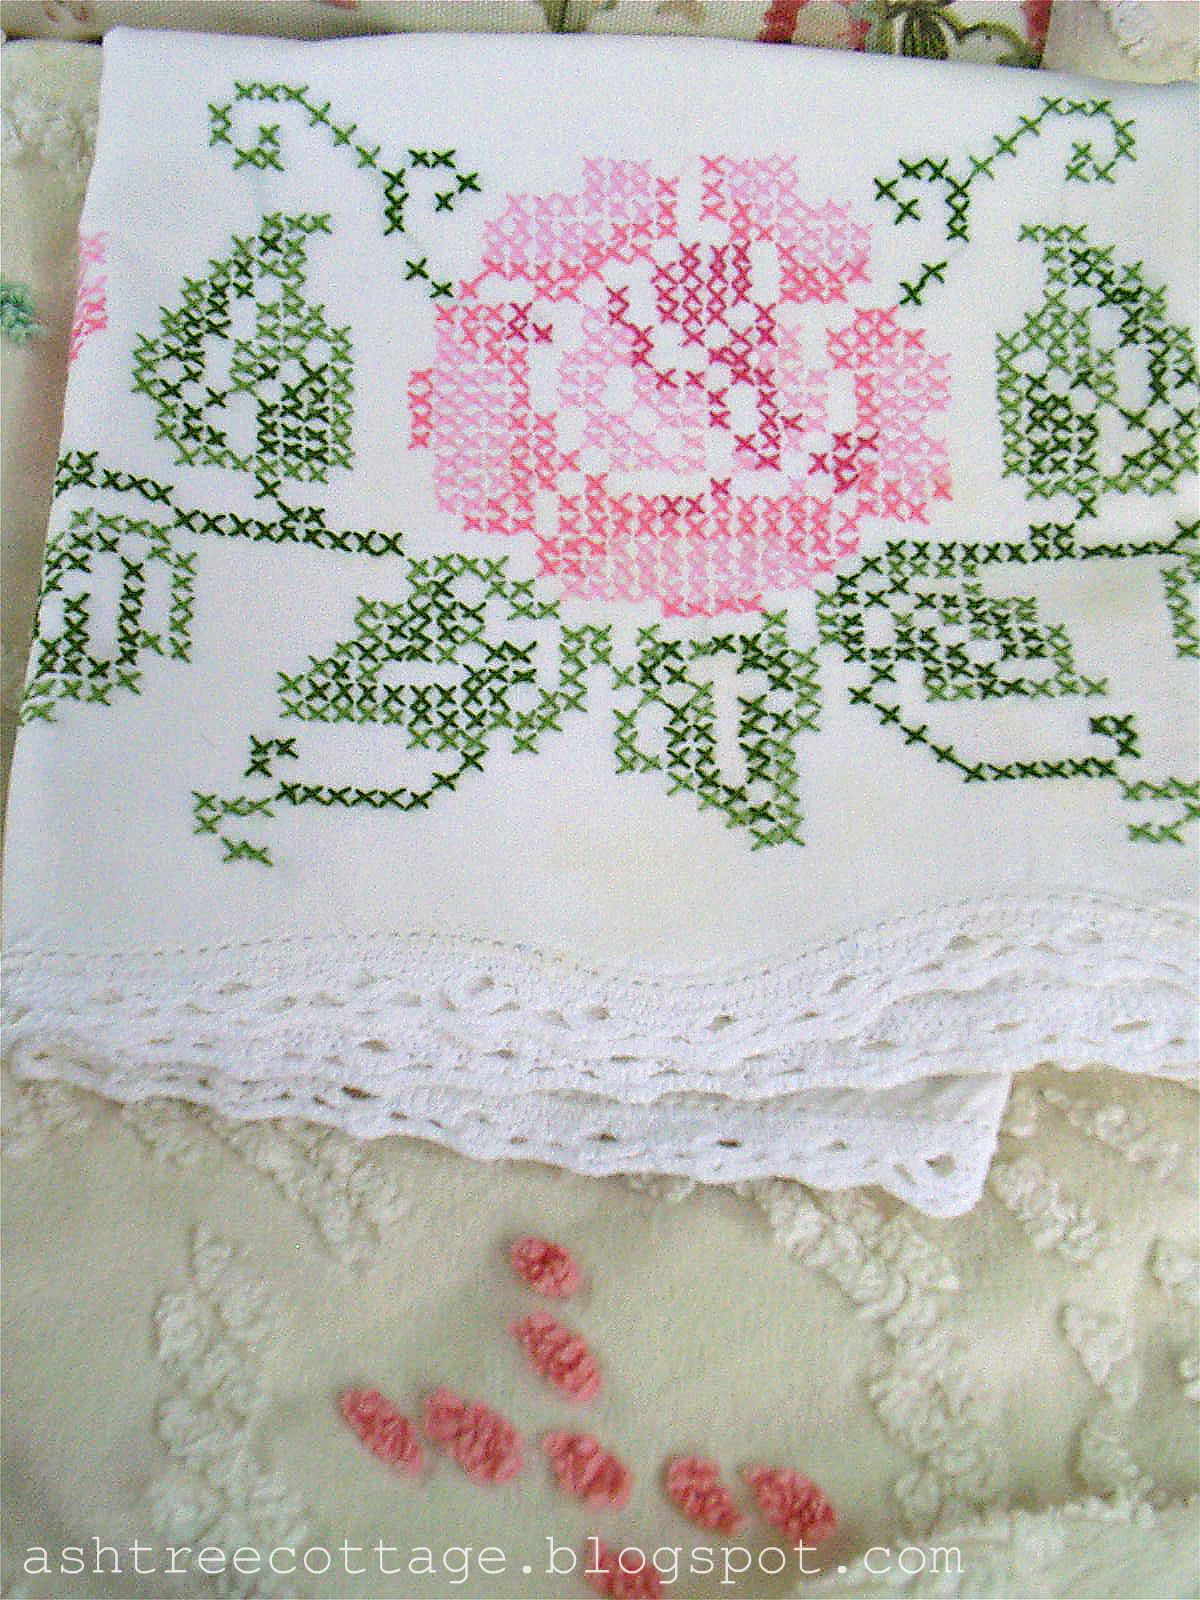 Ash Tree Cottage Sweet Dreams Pink Pillow With Embroider Dream Hand Embroidered And Cross Stitched Cases